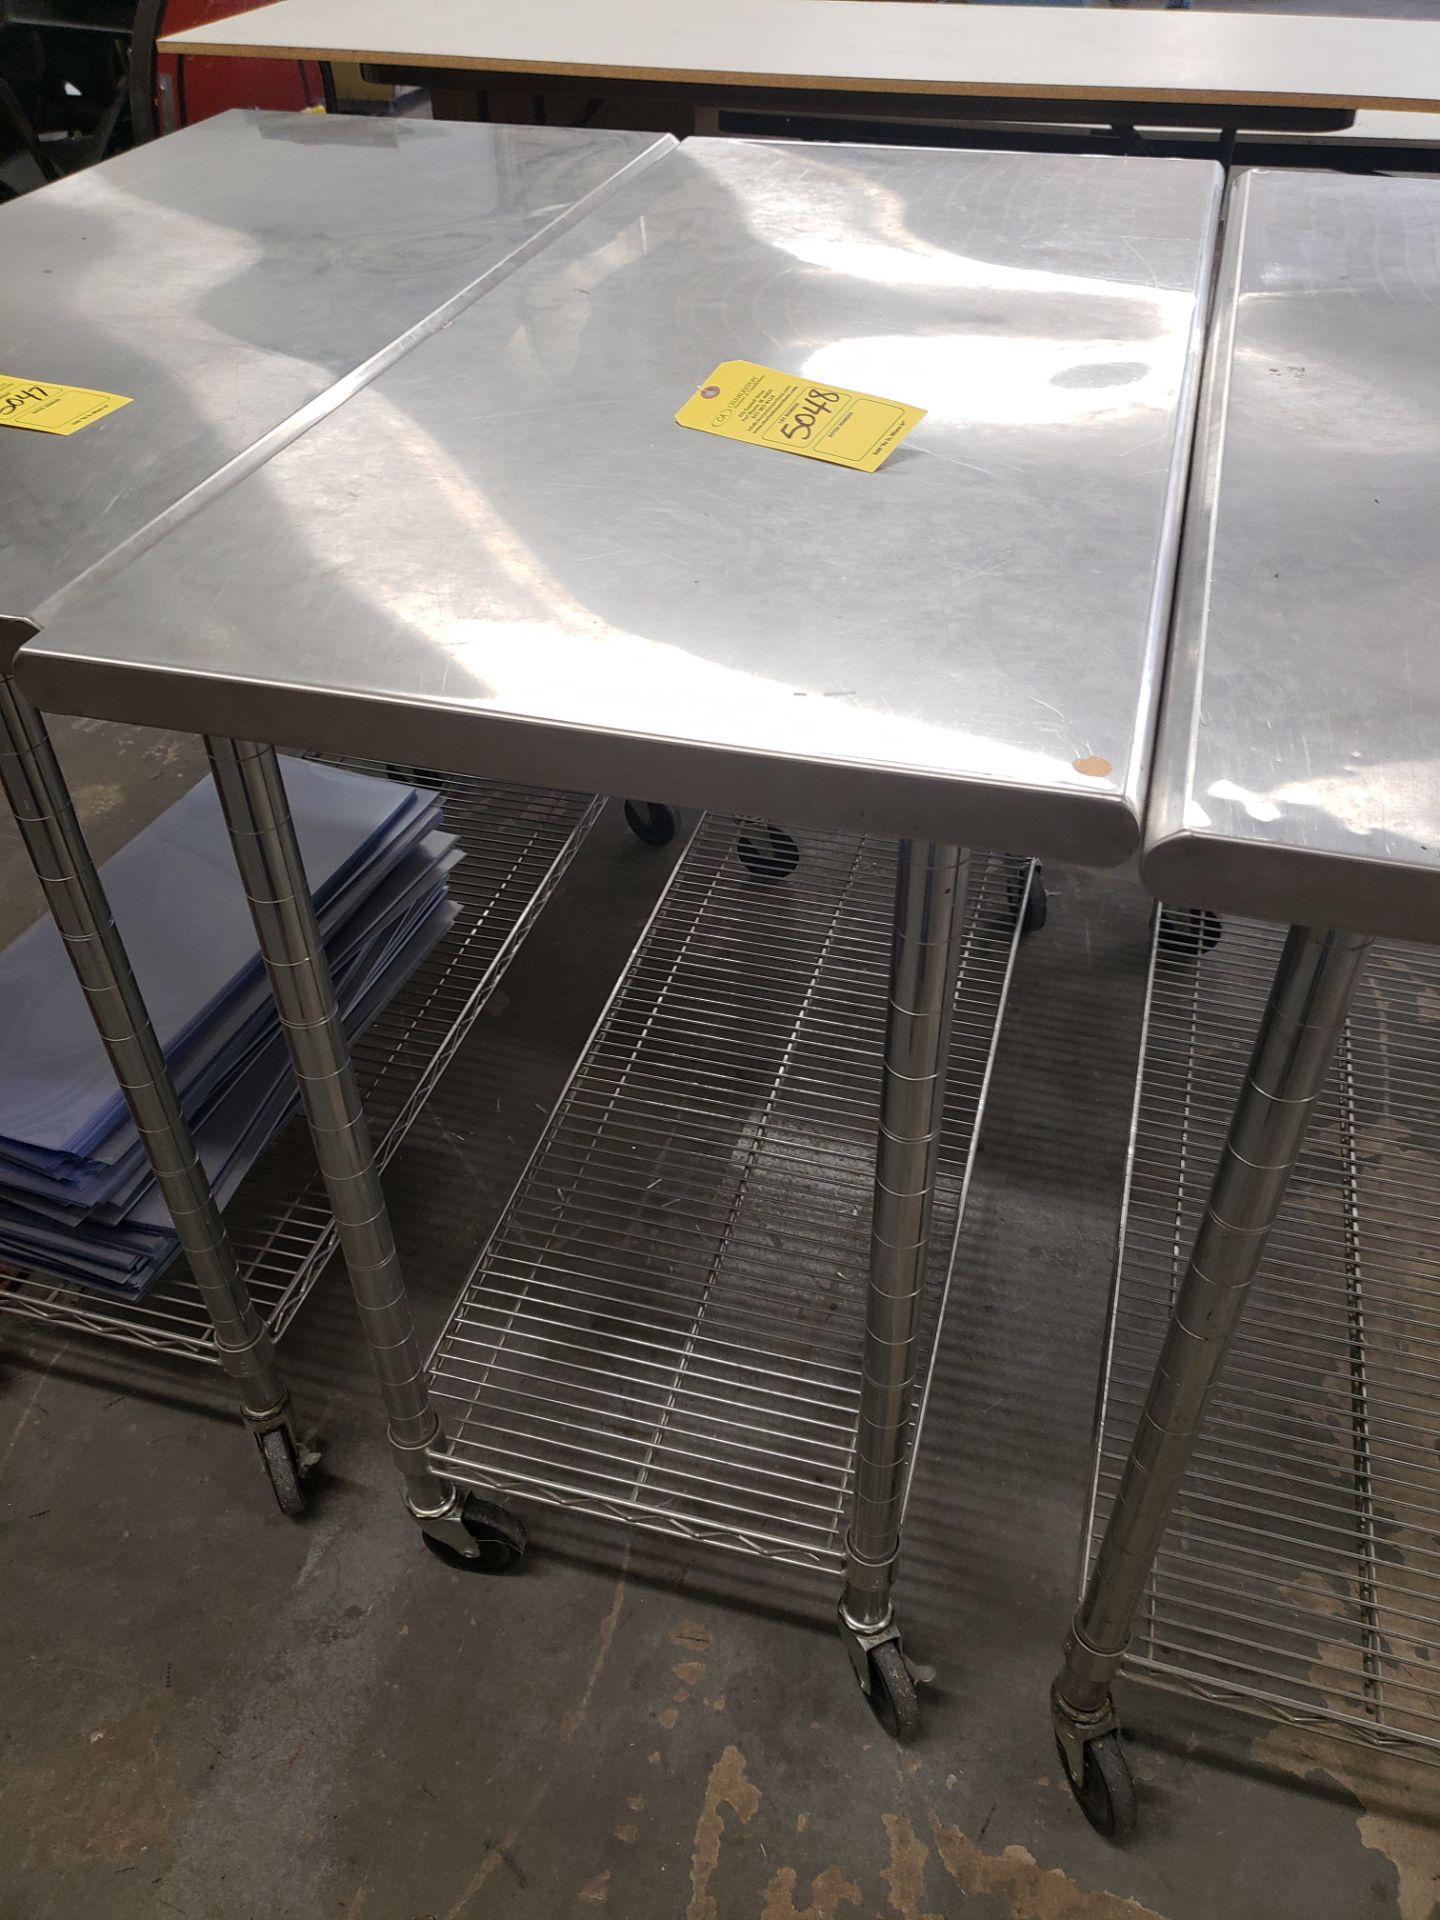 Lot 5048 - STAINLESS STEEL ROLLING TABLE (LOCATED AT: 16335 LIMA ROAD BLDG. 4 HUNTERTOWN, IN 46748)